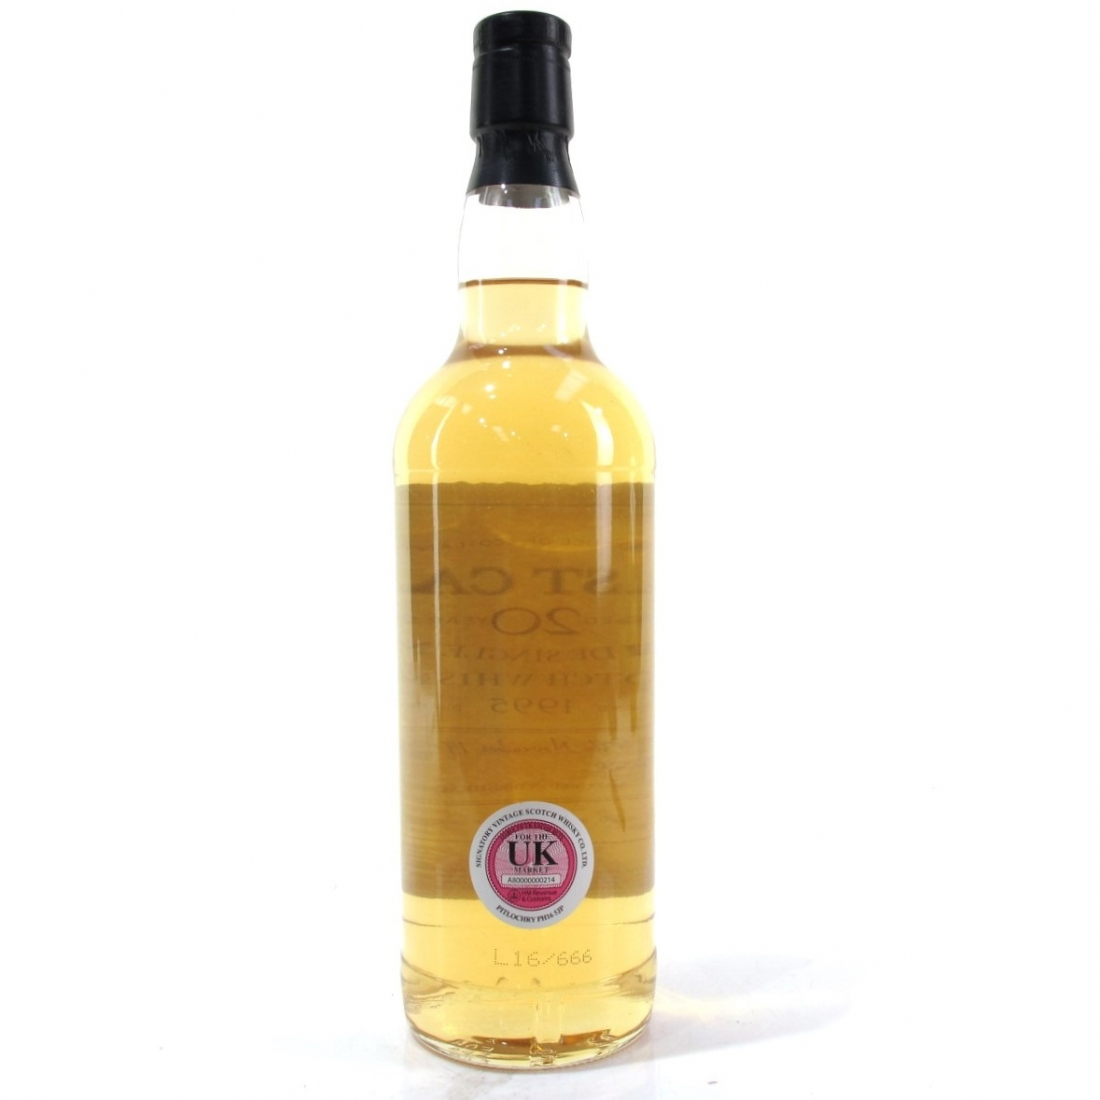 Glen Keith 1995 First Cask 20 Year Old